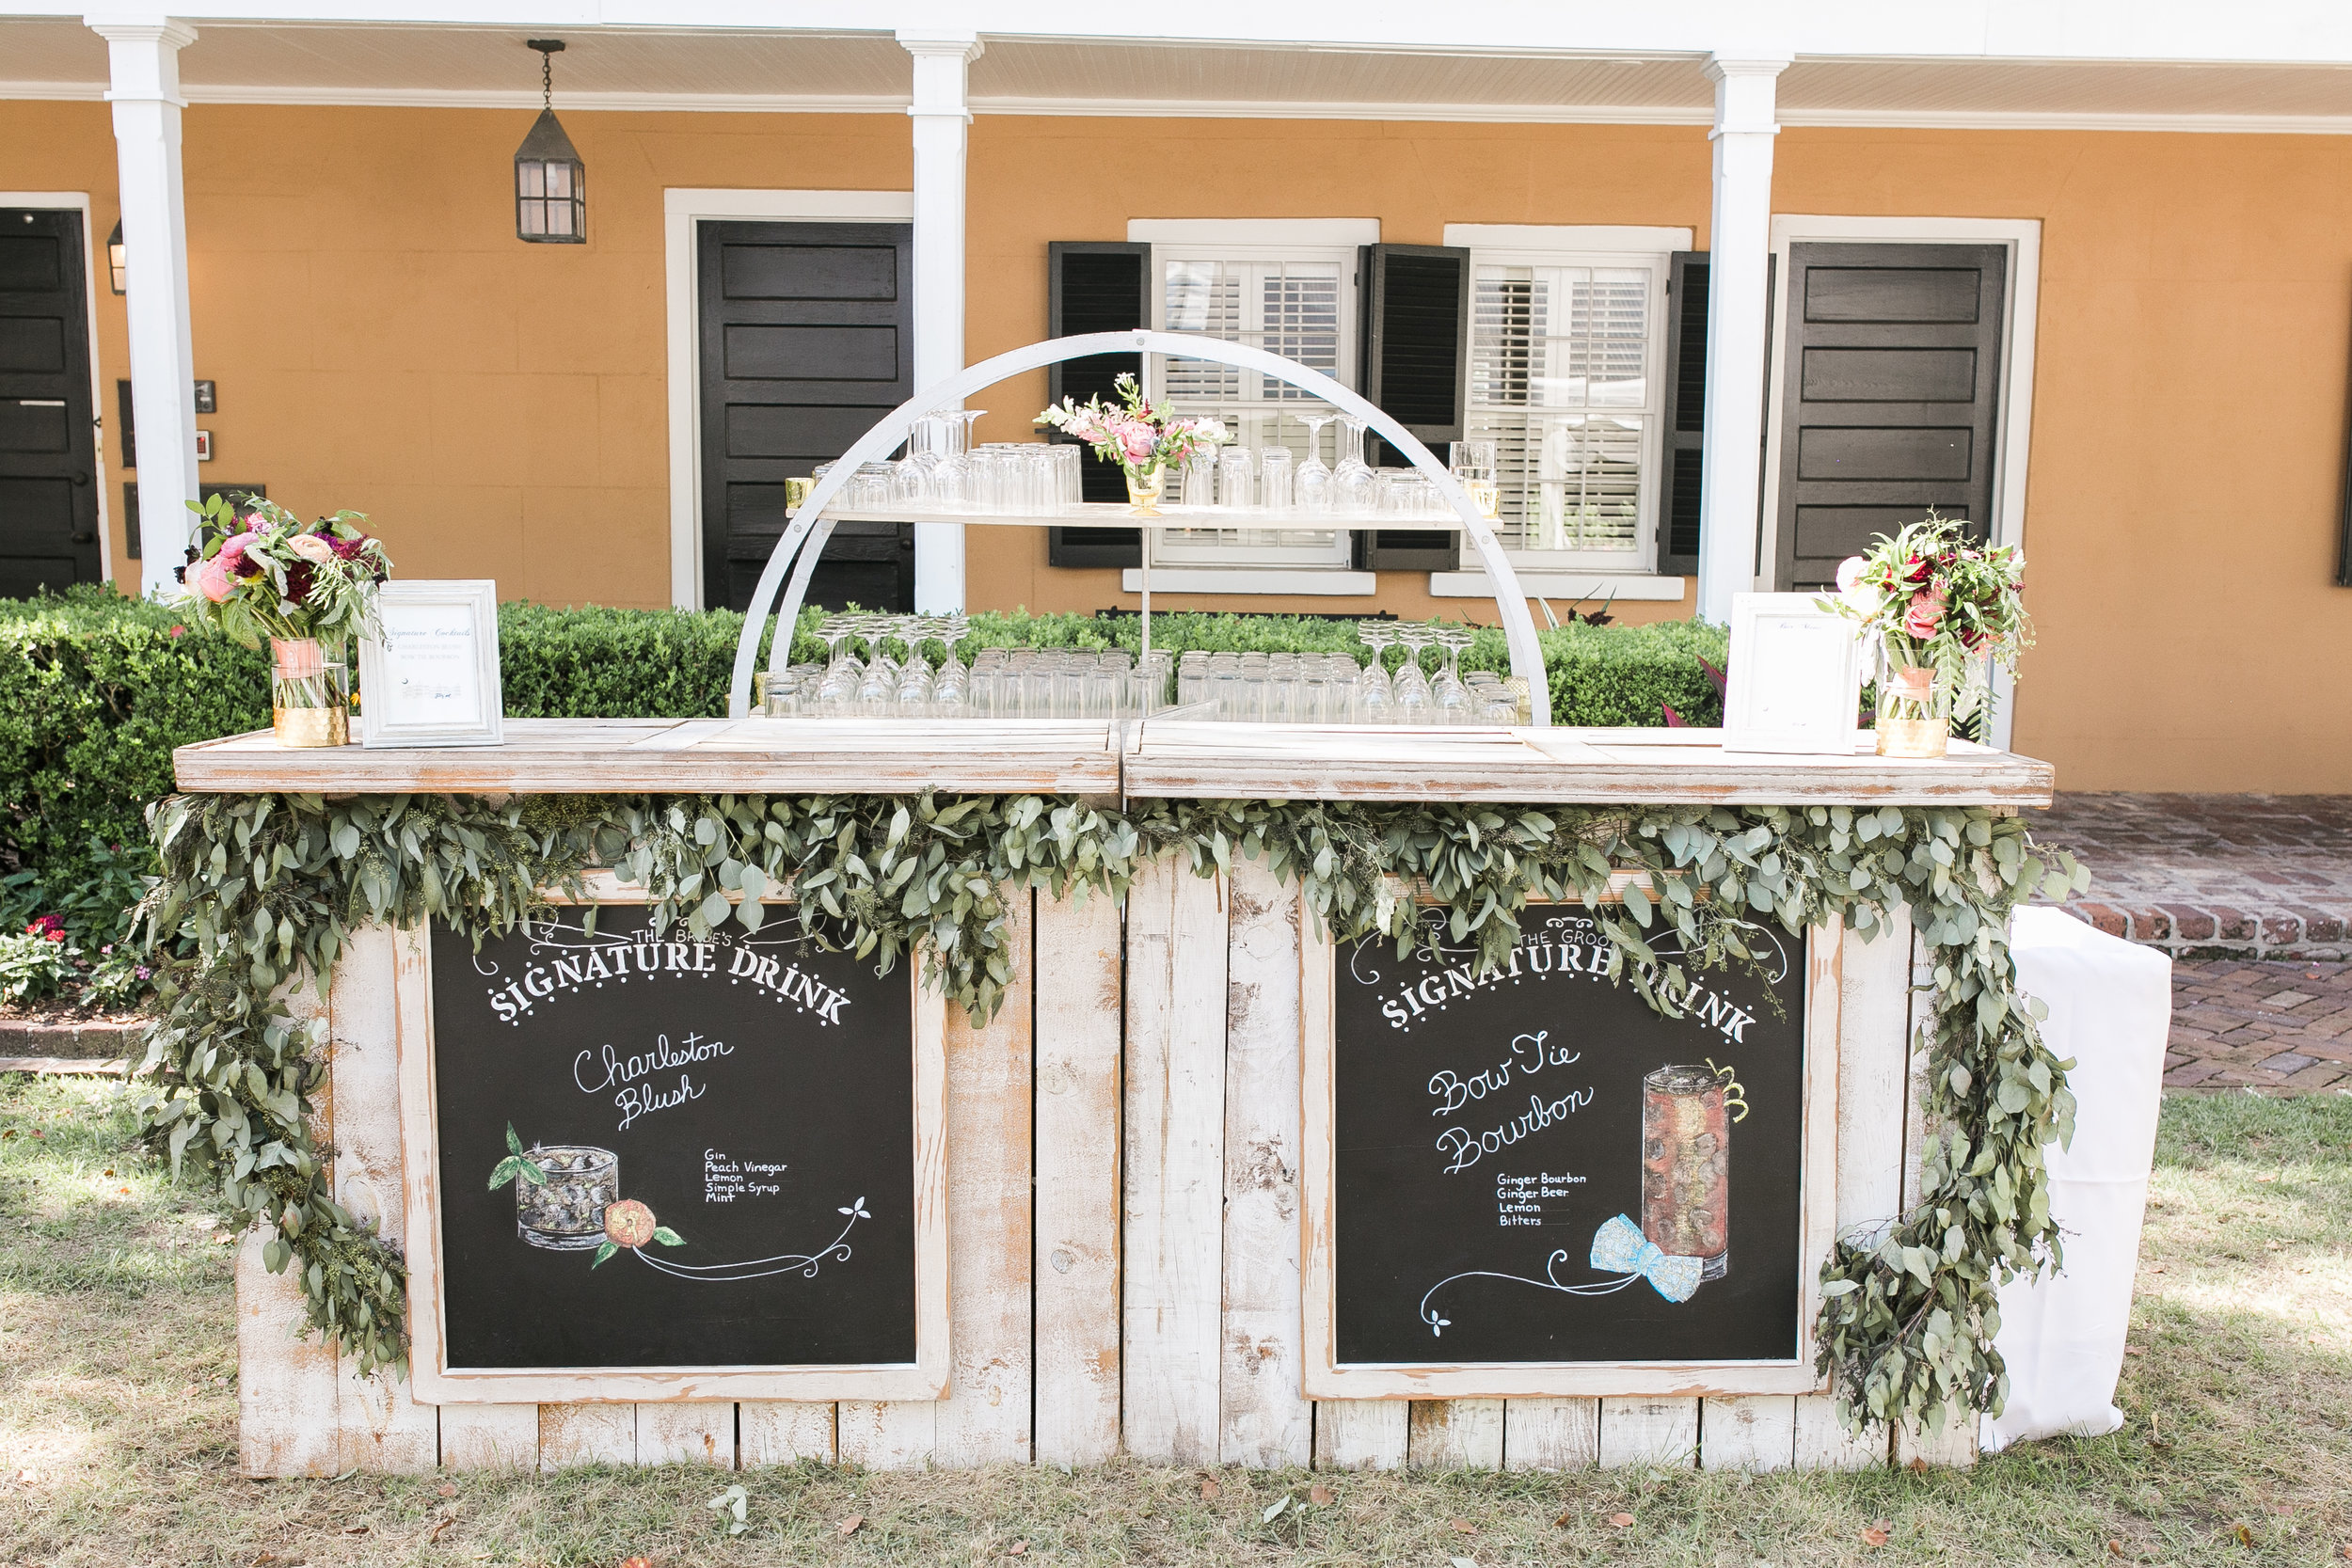 Custom bar with signature cocktail drink signs photographed by Jenna Marie Weddings  Colorful outdoor reception at The Thomas Bennett House wedding in Charleston, SC  //  photographed by Jenna Weddings  Traditional wedding ceremony at Cathedral of St. John the Baptist in Charleston, SC  //  A Lowcountry Wedding Magazine & Blog